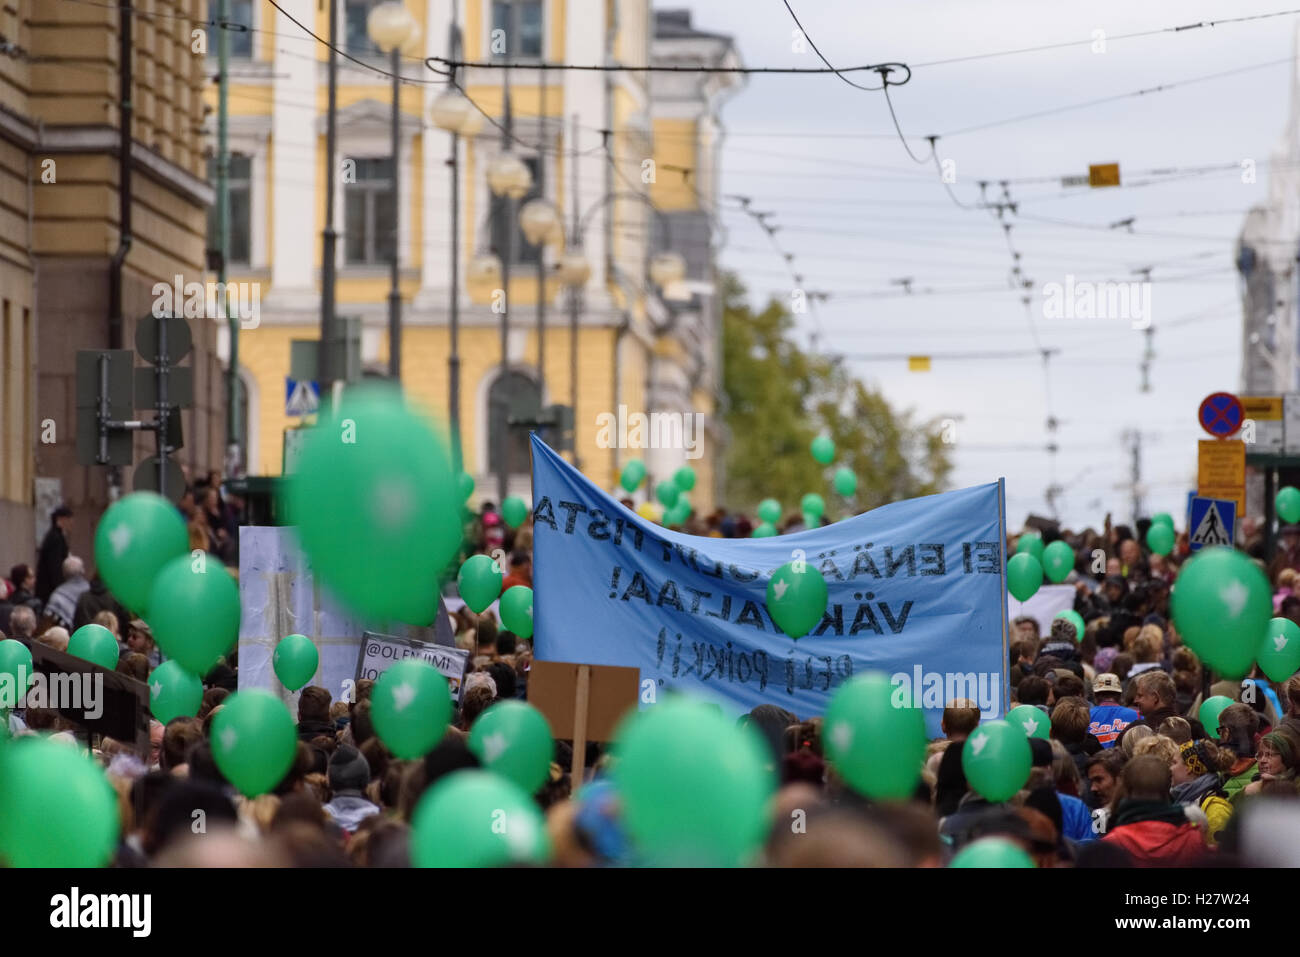 Protest rally against racism and right wing extremist violence in Finland - Stock Image